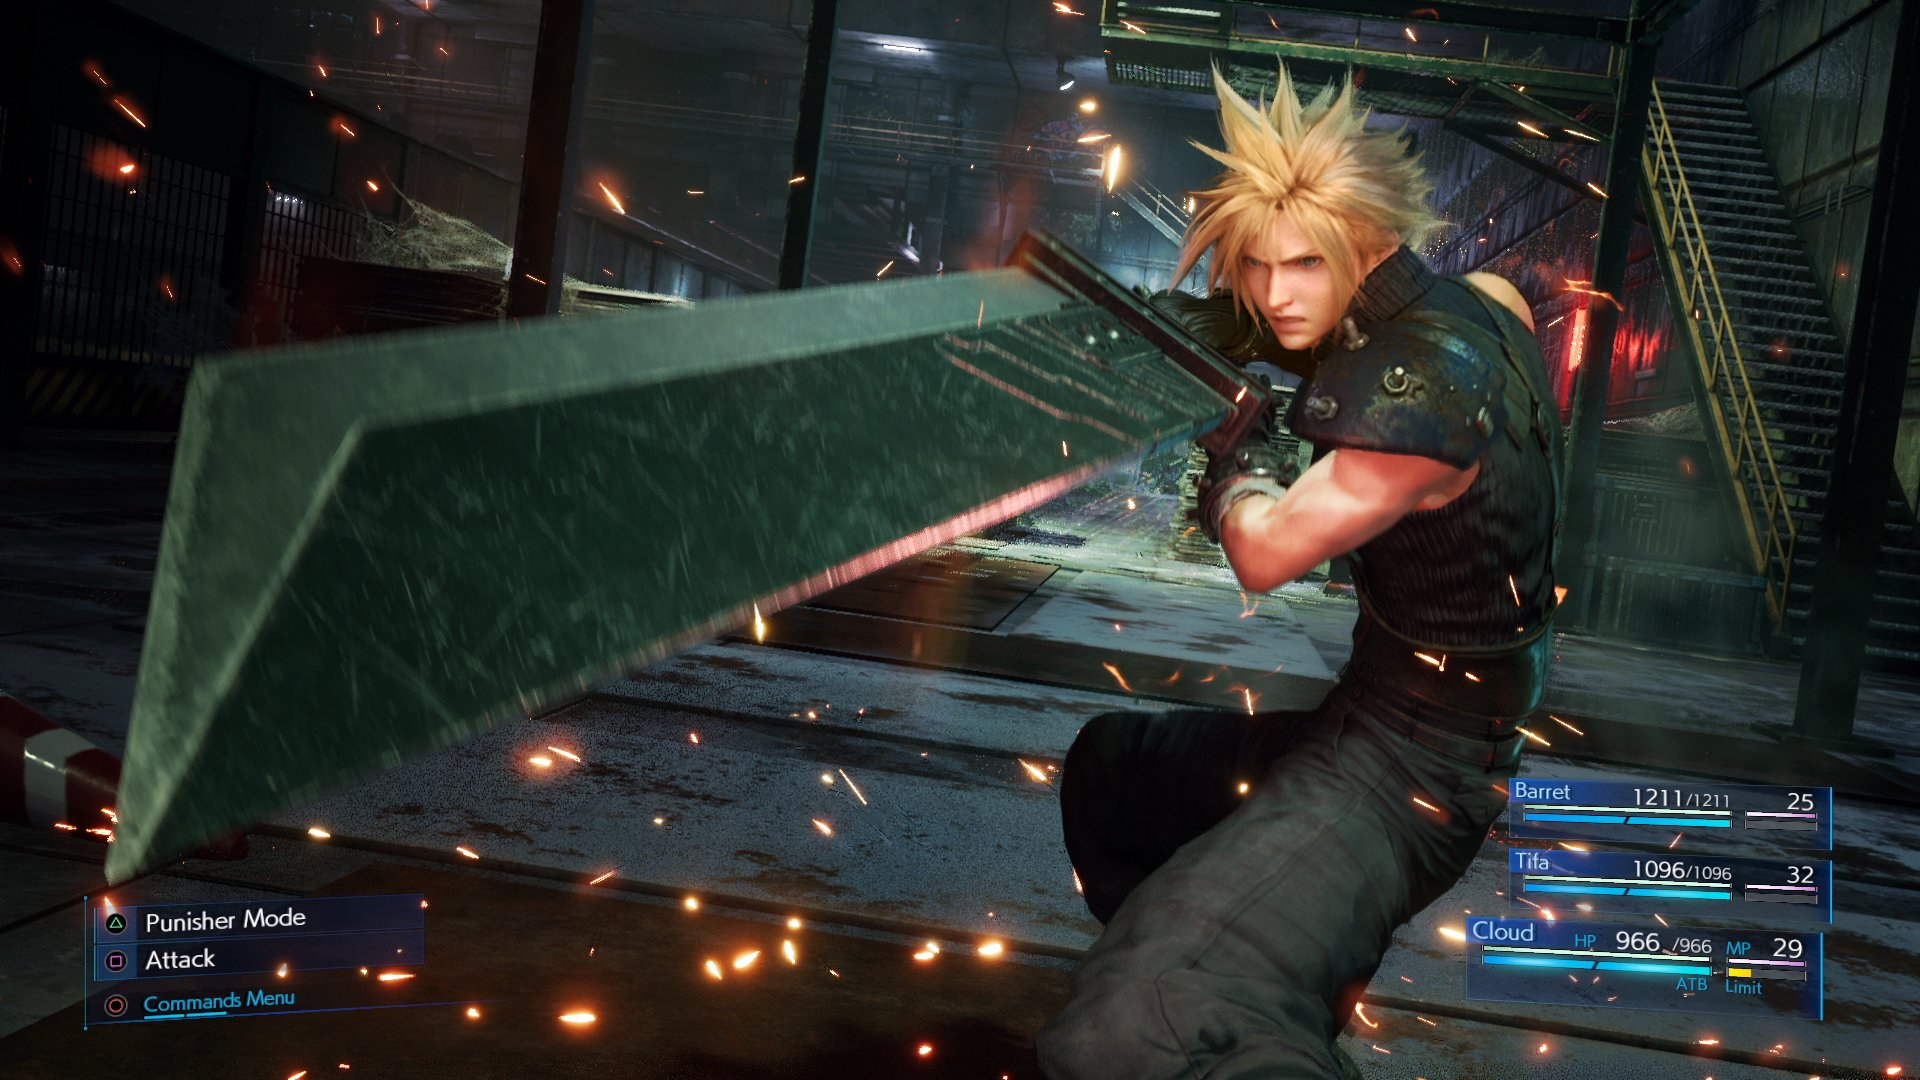 Square Enix is promising us a new look at the Final Fantasy VII Remake this week screenshot